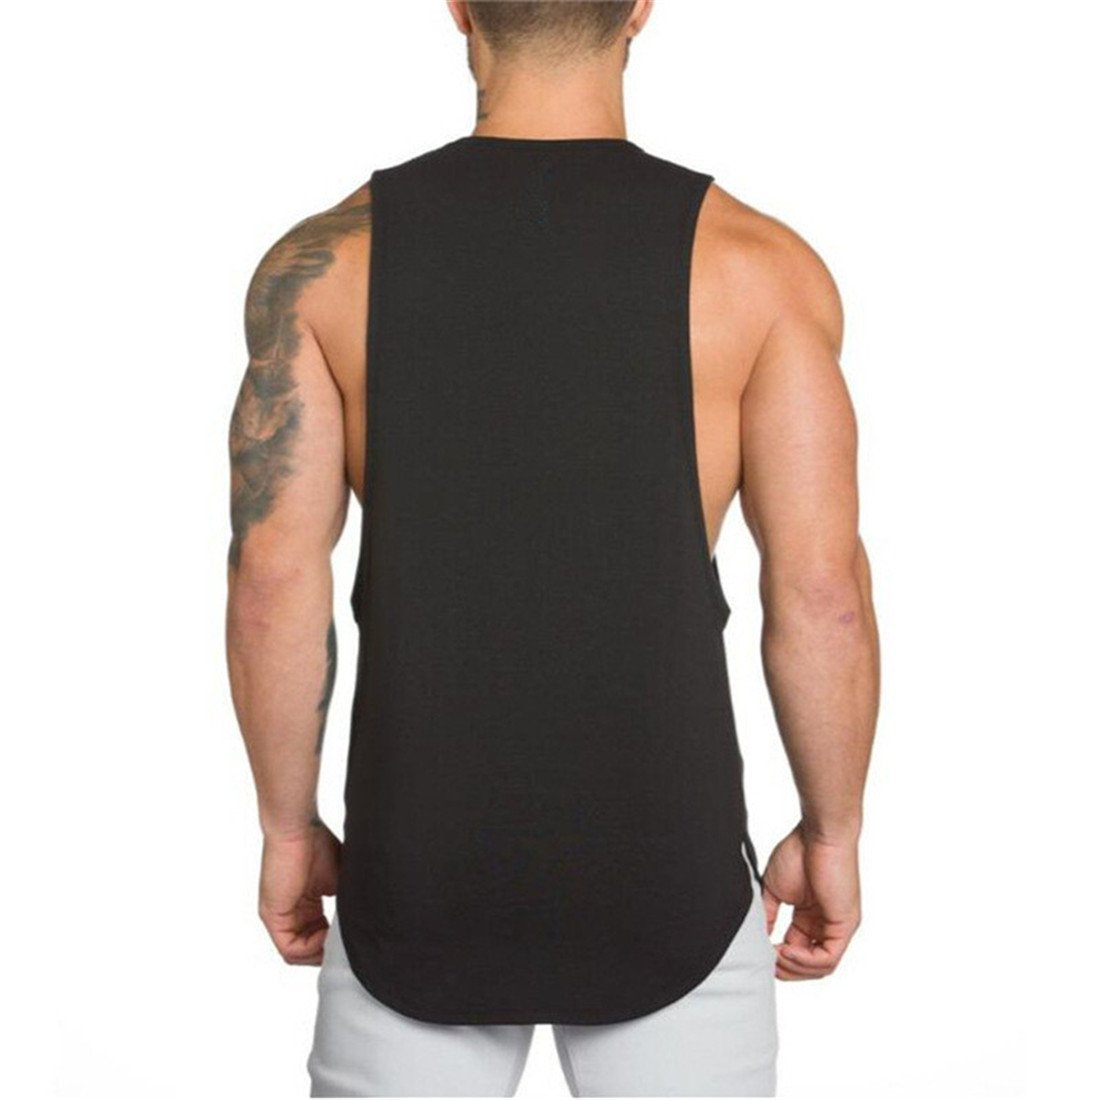 855f7a638a255 YeeHoo Men s Fitted Muscle Stringer Vest Cut Open Sides Workout Tank Tops  Gym Bodybuilding T-Shirts  Amazon.co.uk  Clothing